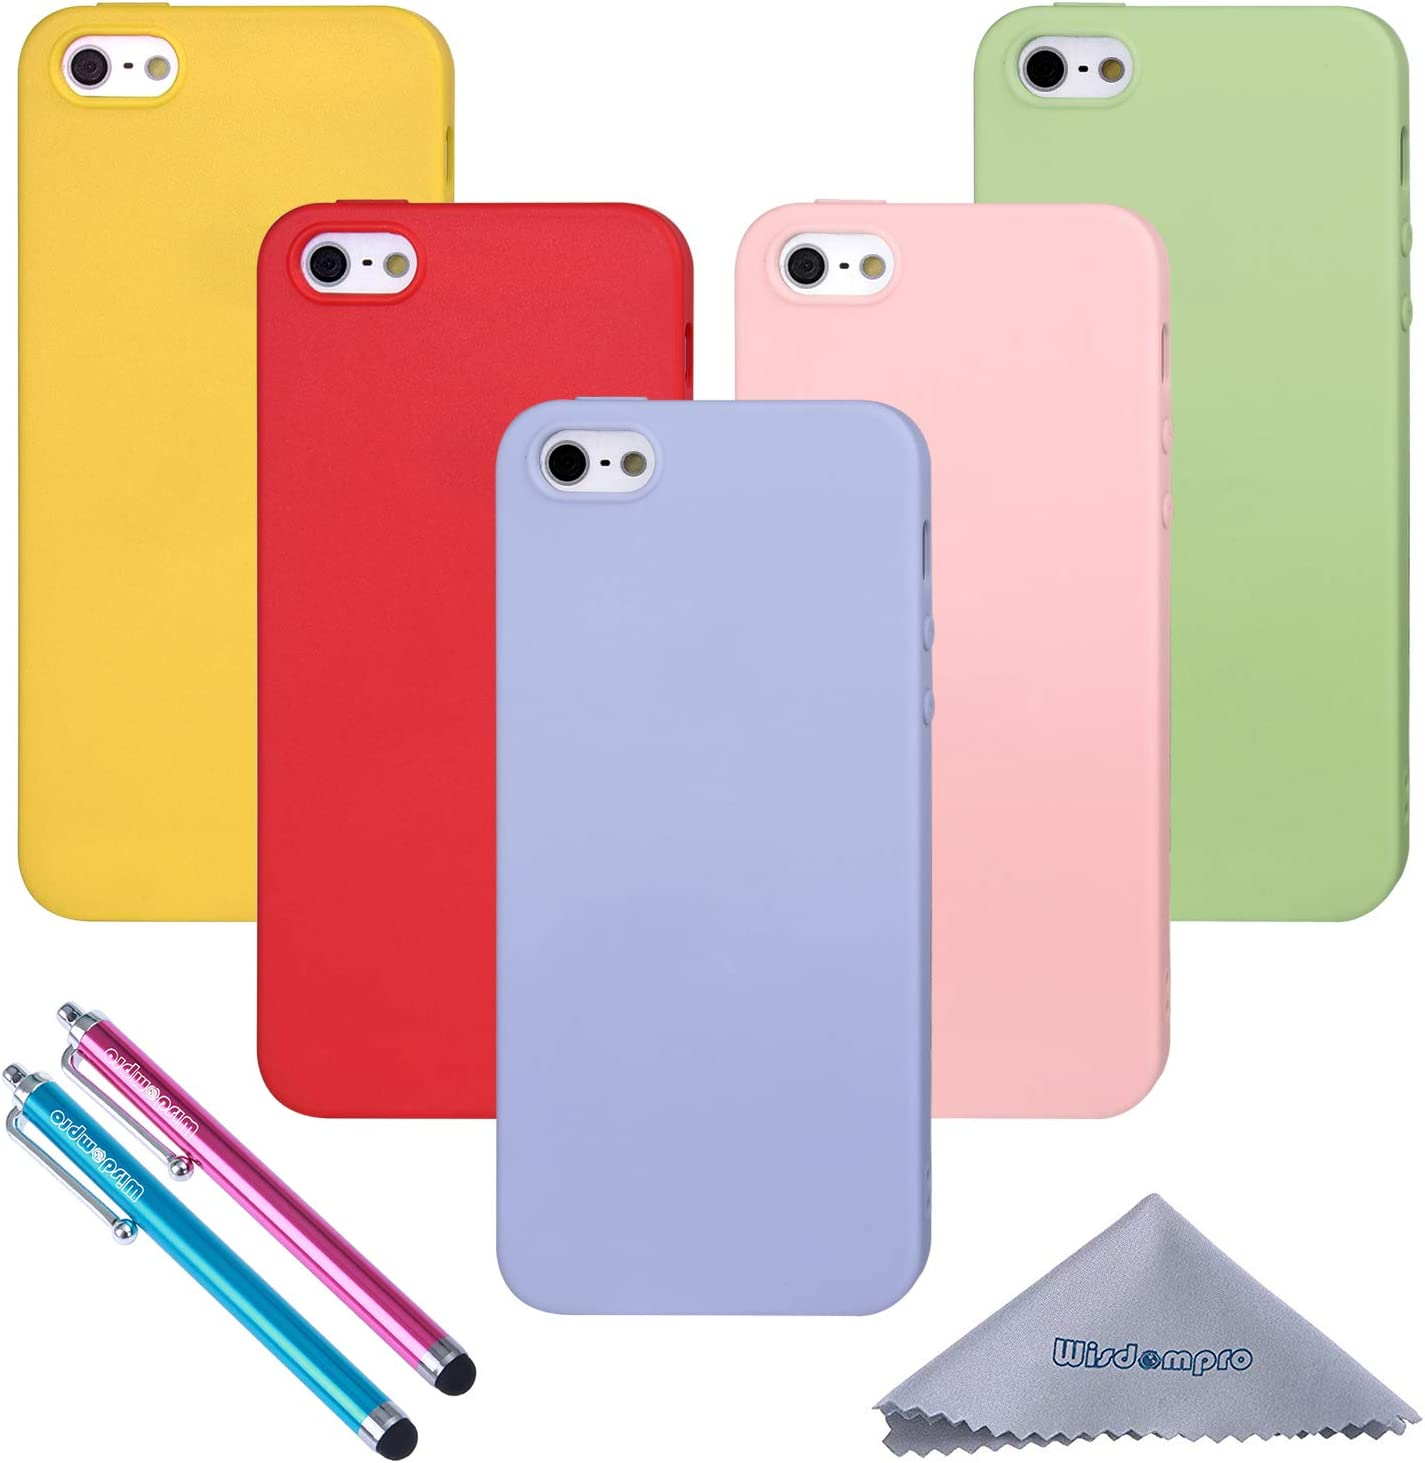 iPhone 5s Case, Wisdompro 5 Pack Bundle of Colorful Soft TPU GEL Slim Fit Protective Case Cover for Apple iPhone 5, iPhone 5s&iPhone SE 1st Generation(Green, Light Blue, Pink, Yellow, Red)-Candy Color